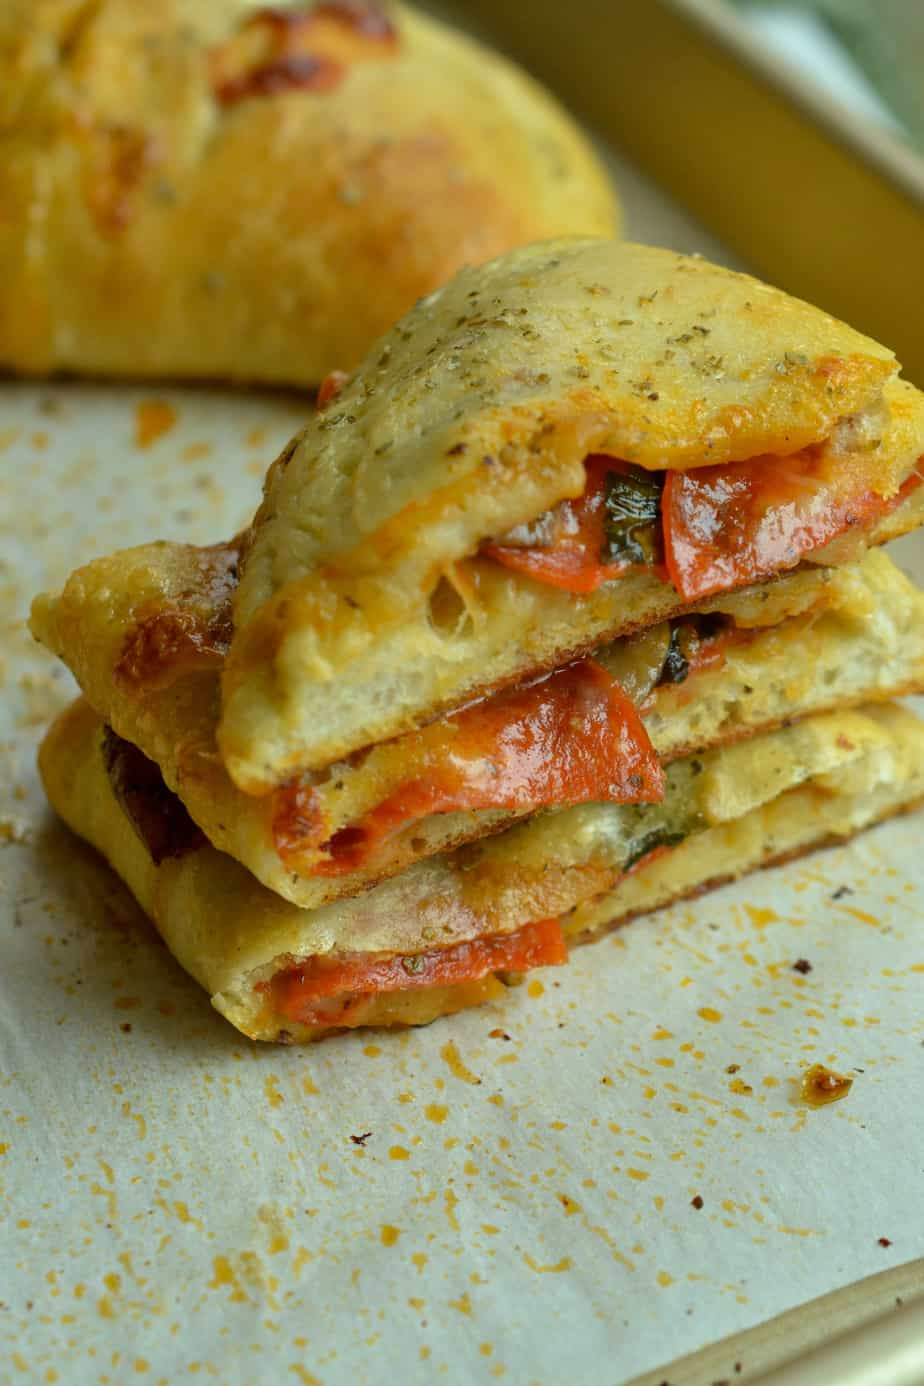 A delectable and easy Calzone recipe using homemade pizza dough, mozzarella, pepperoni and your favorite vegetables.